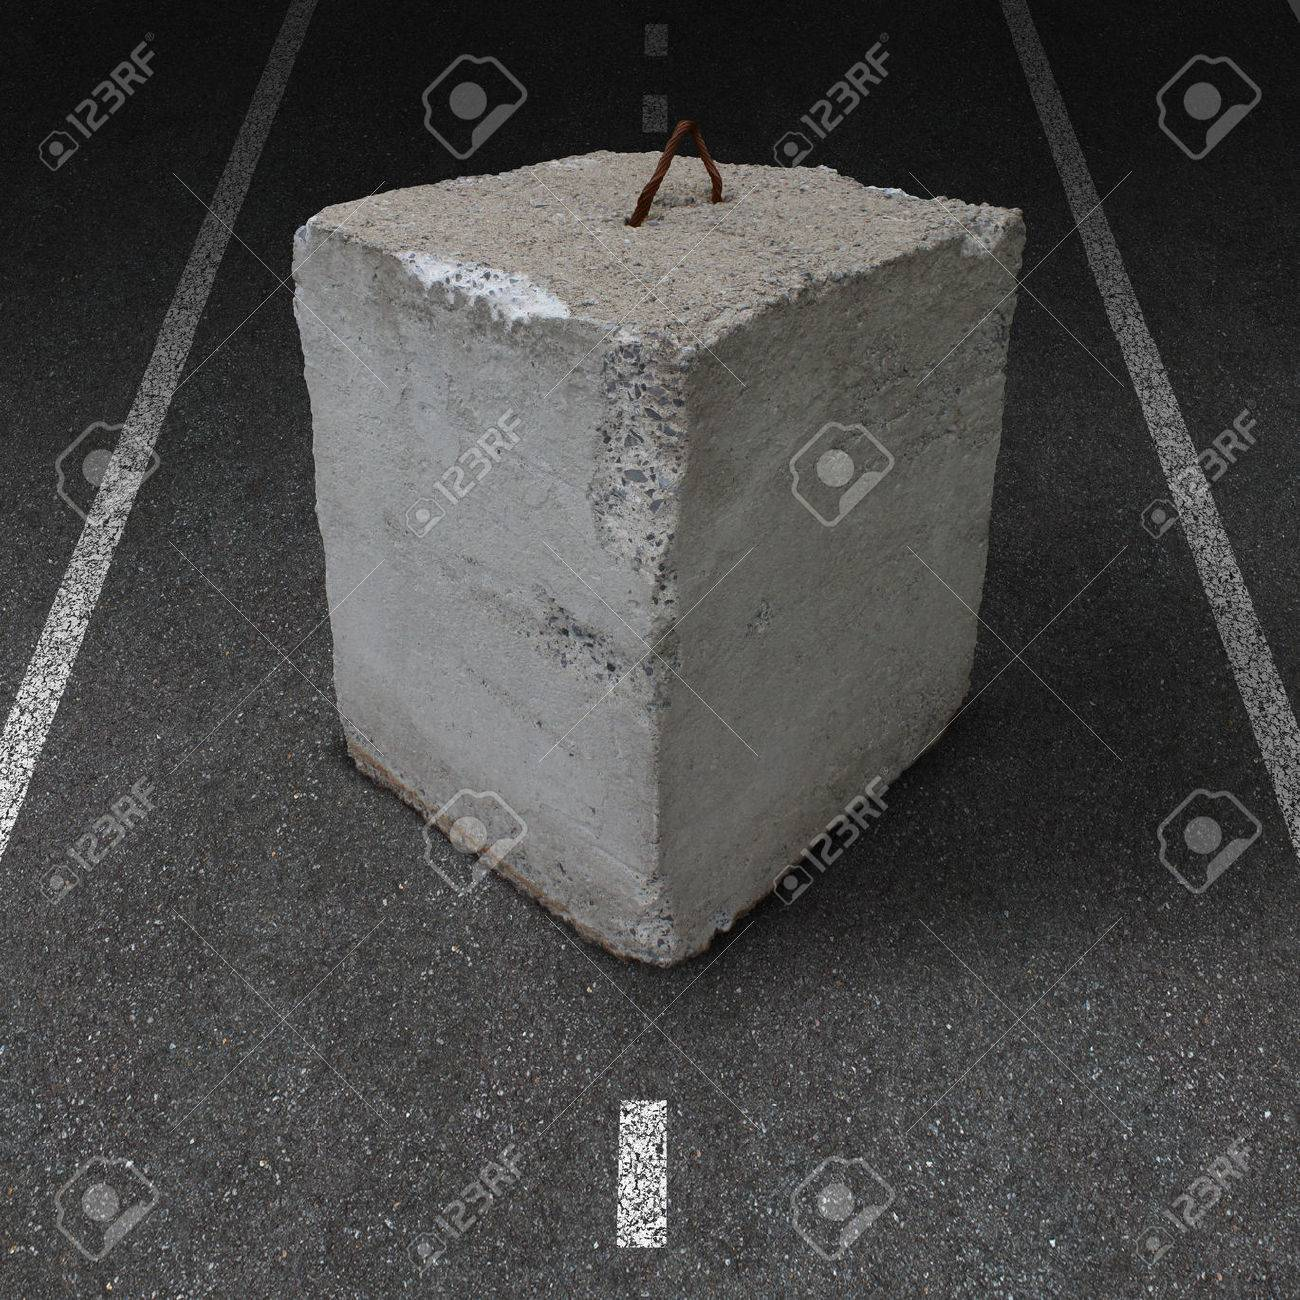 Roadblock obstacle and barrier business concept with a huge cement or concrete cube barricade blocking a road or highway as a symbol of restricted opportunity or political gridlock resulting in government or financial system shutdown Stock Photo - 22993136